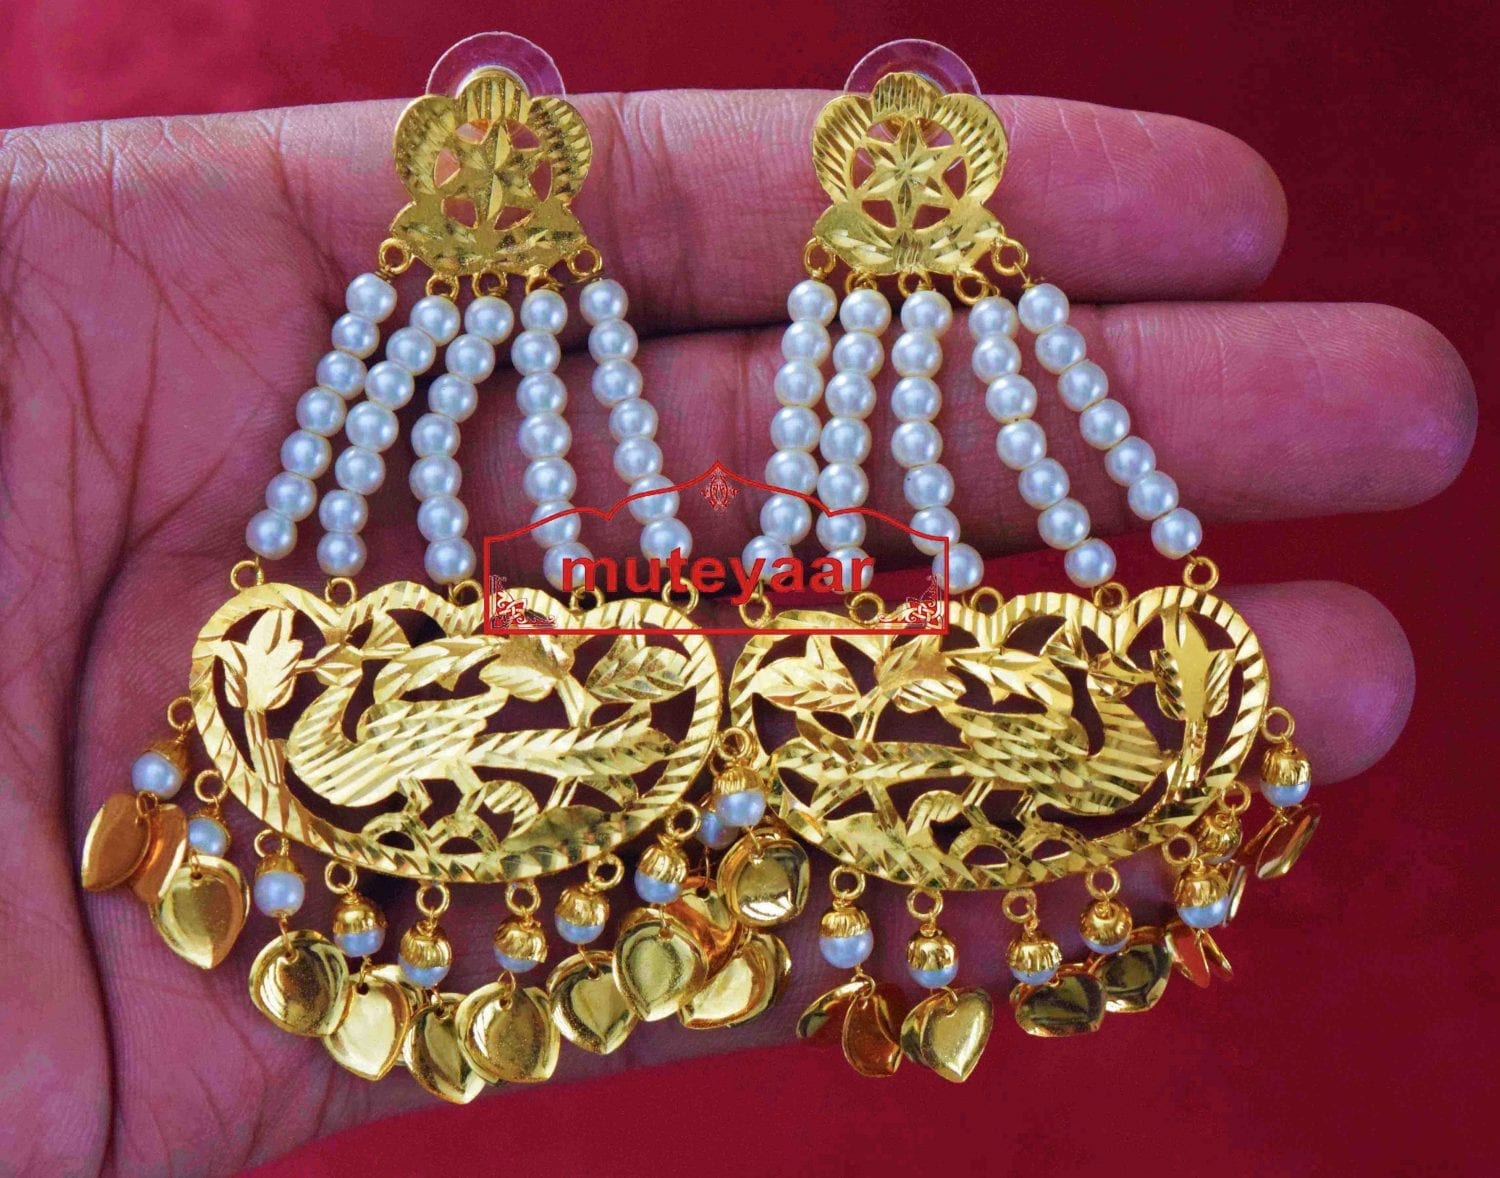 24 ct. Gold Plated  Handmade Traditional Punjabi Clip Design Earrings Jhumka J0384 2